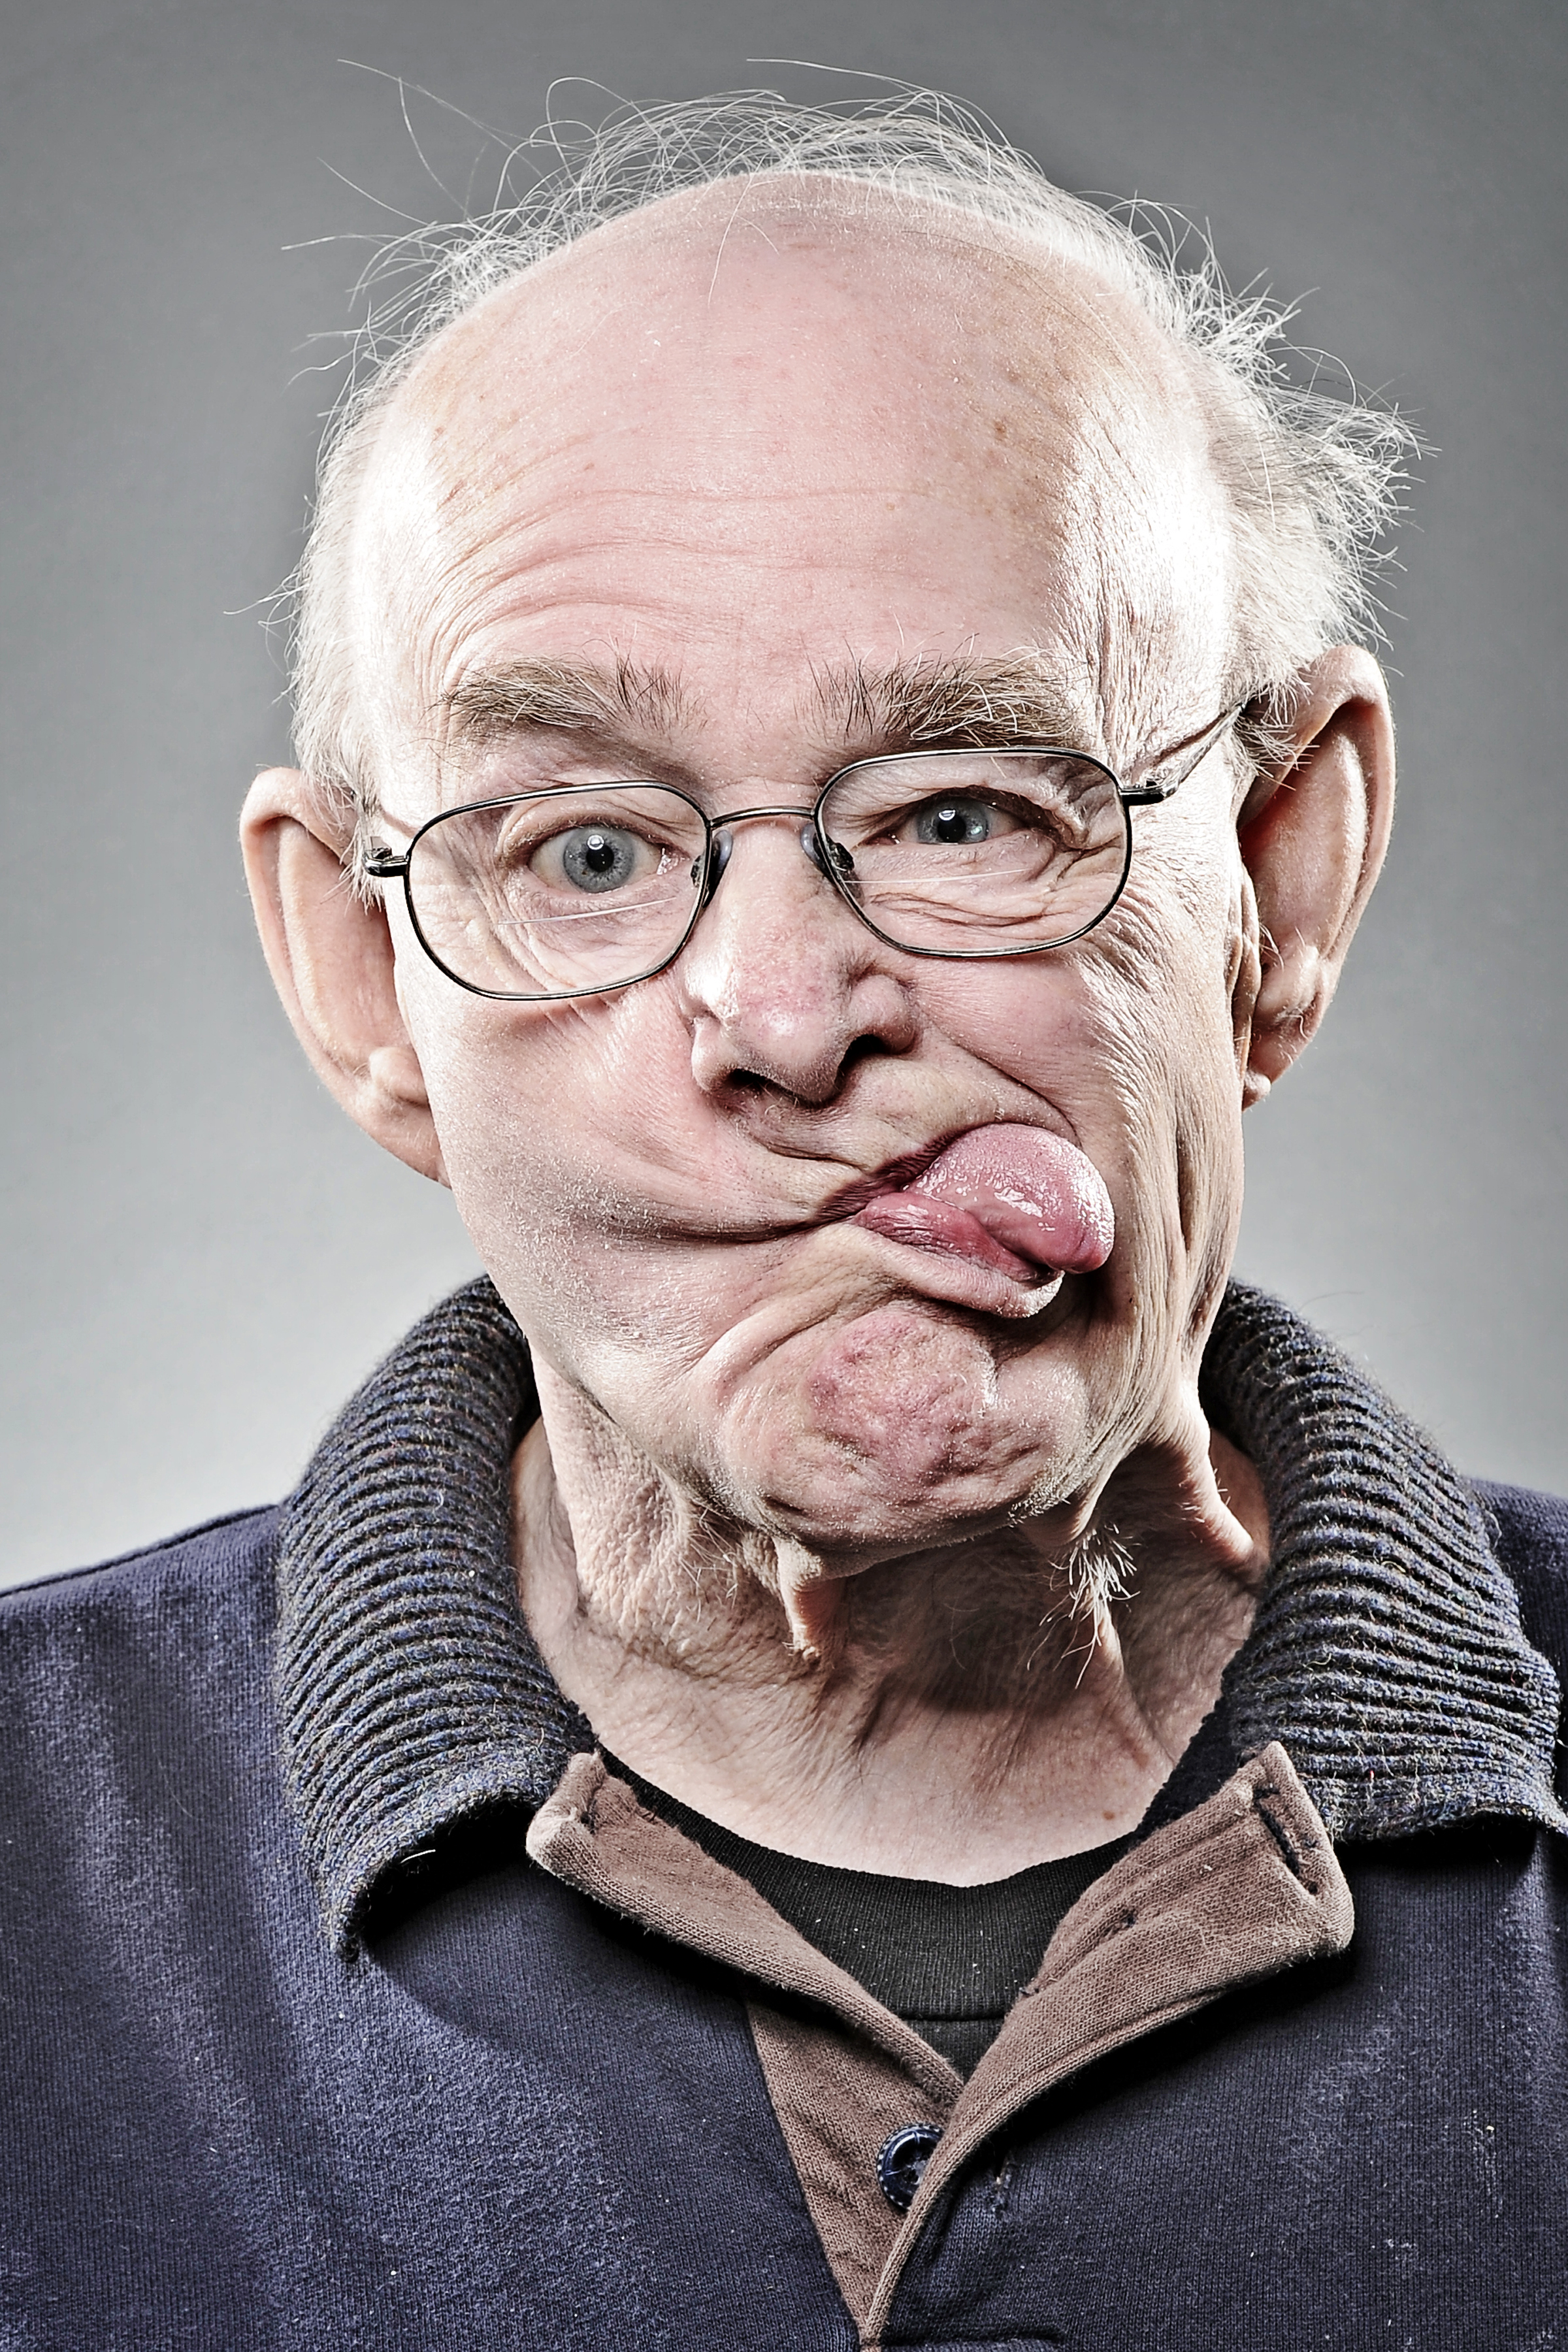 ugly face pictures - HD2400×3600